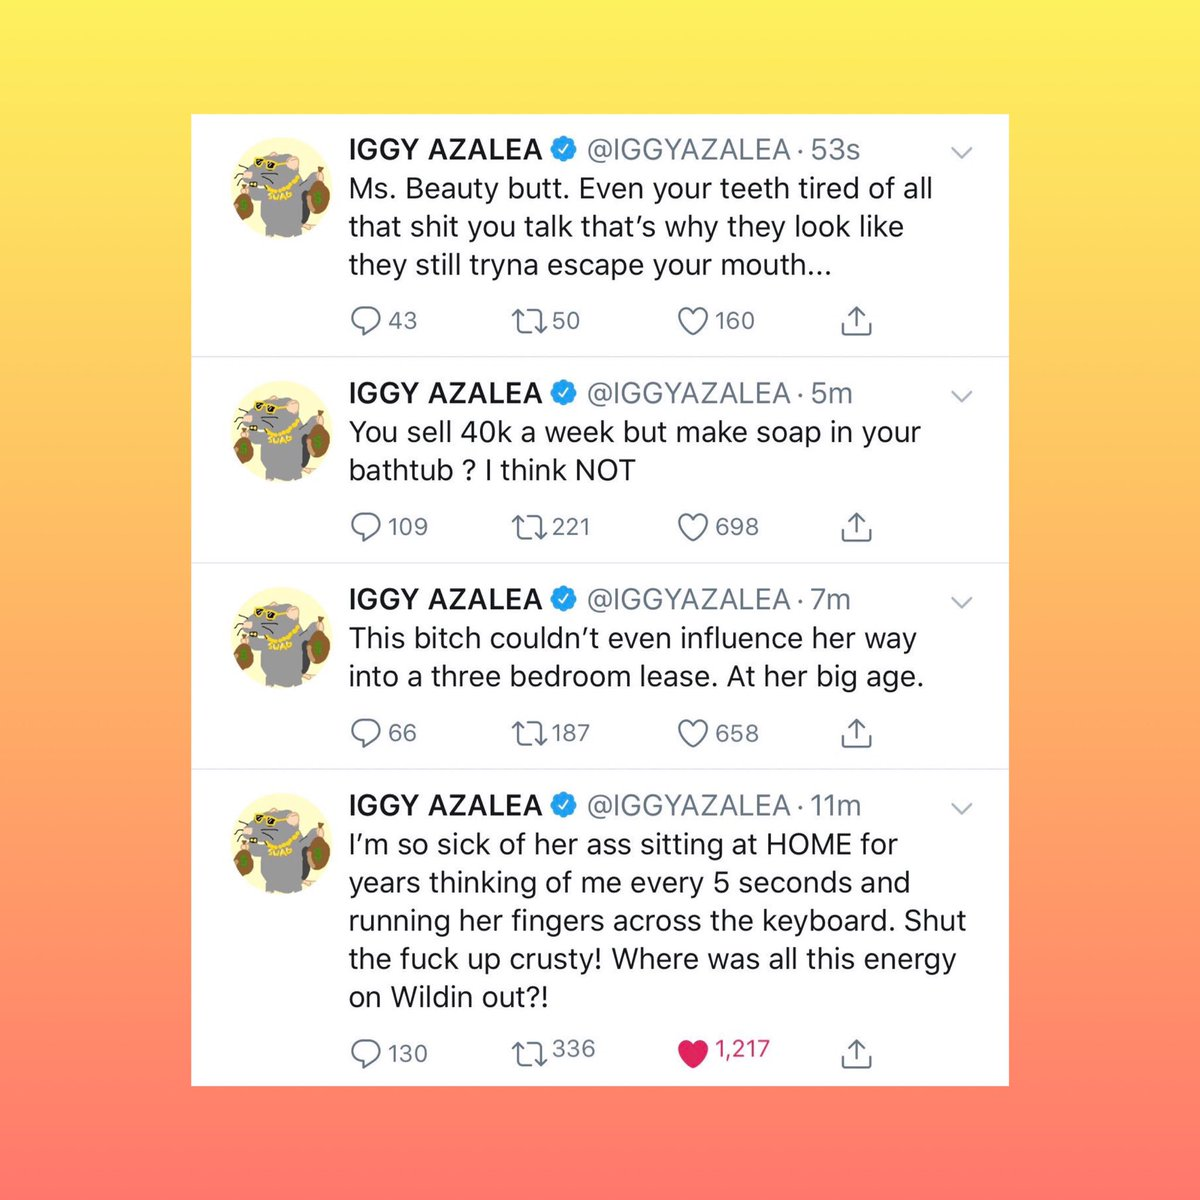 Pop Crave On Twitter Iggy Azalea Claps Back At Azealia Banks On Twitter Where Was All This Energy On Wild N Out